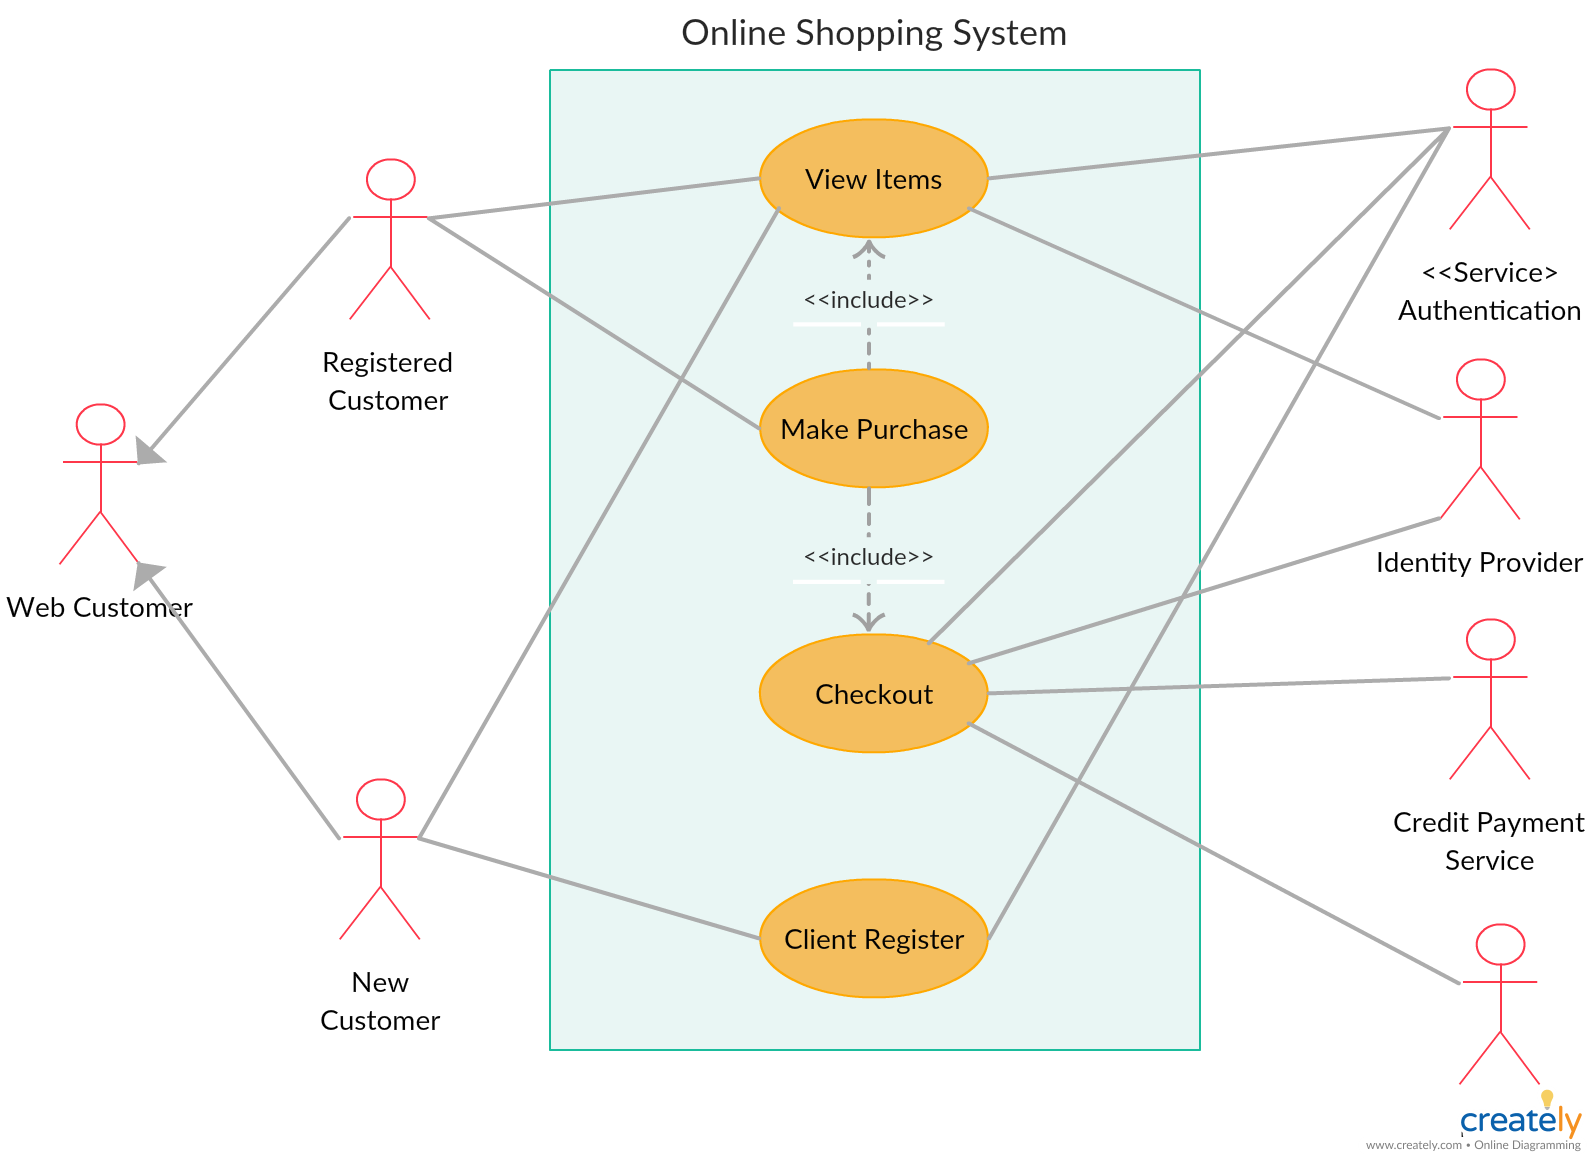 Online purchasing system usecase. If you're a frequent ...